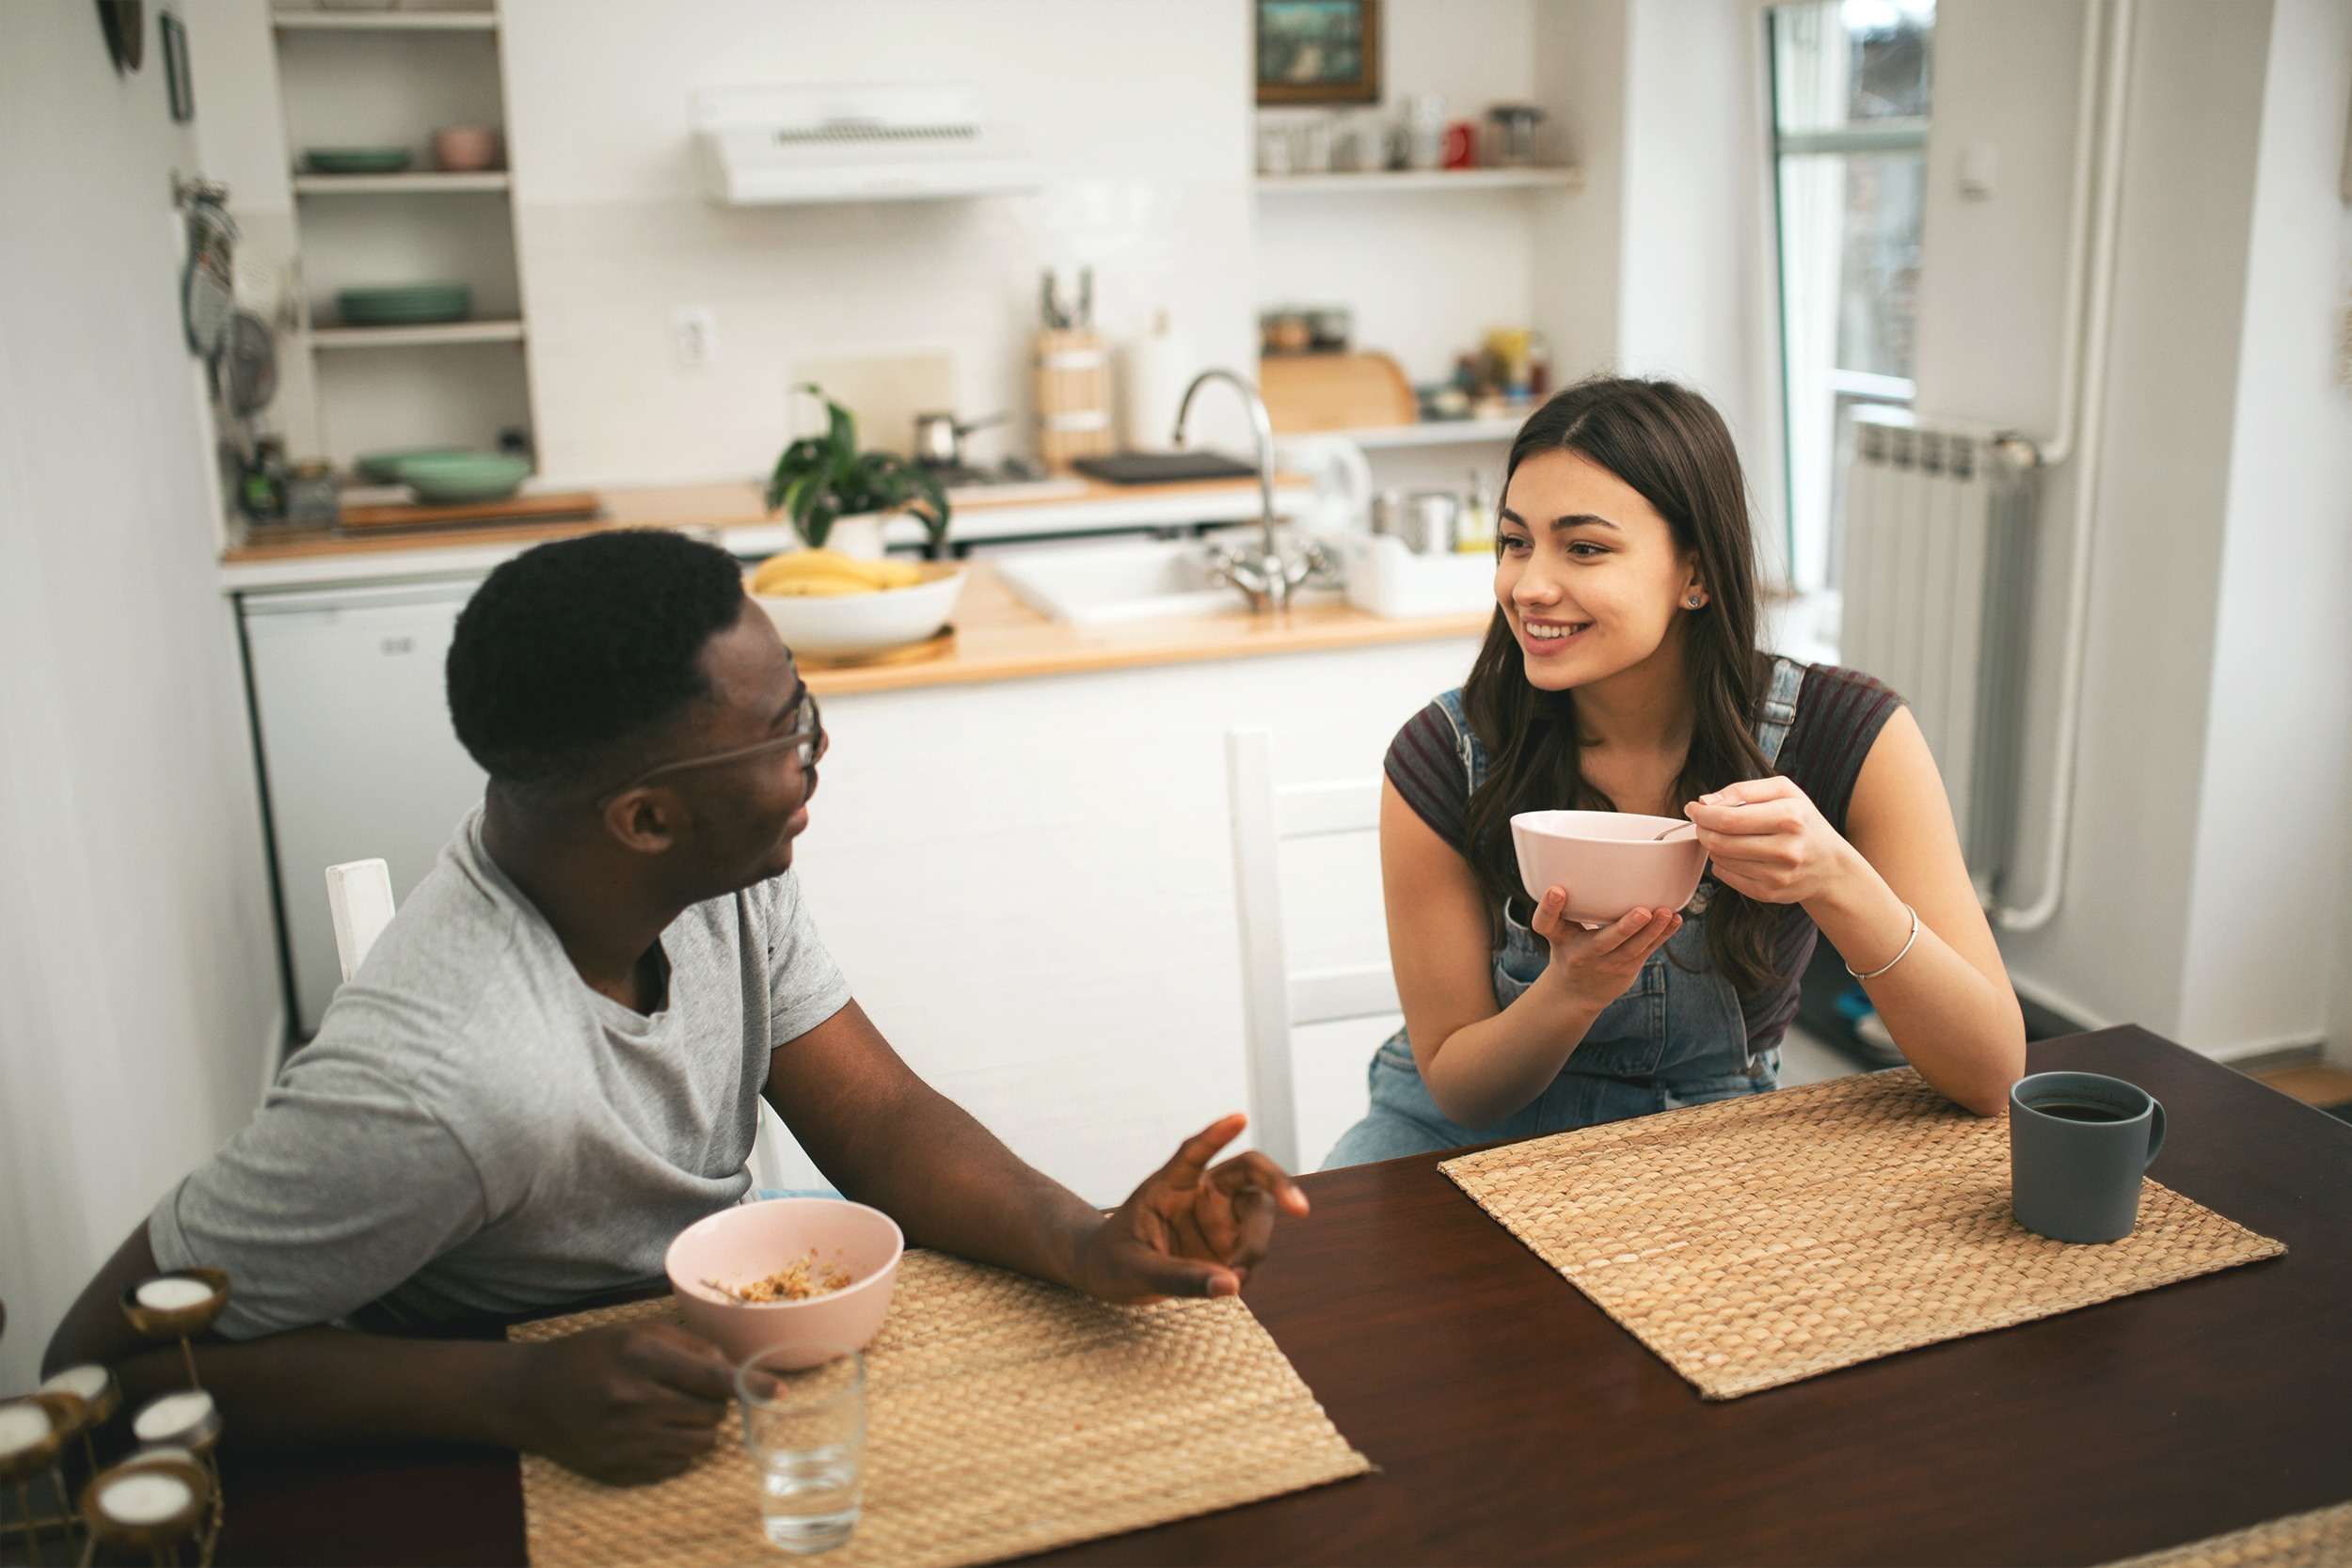 4-tips-to-build-everyday-trust-in-relationships